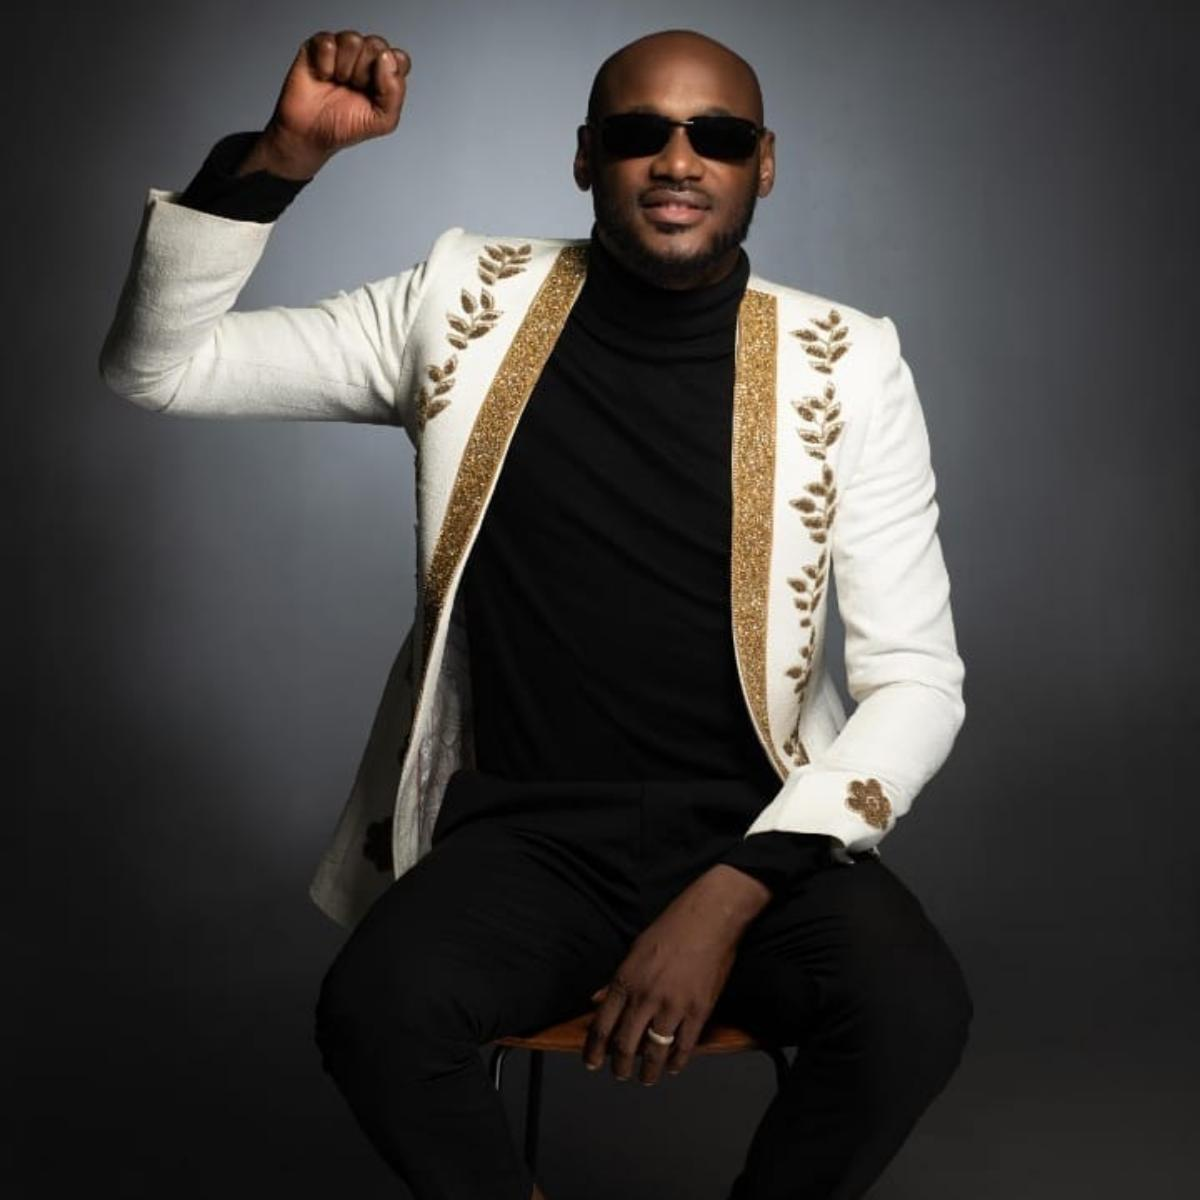 2Baba Sends Major Shout Out To COVID-19 Health Workers